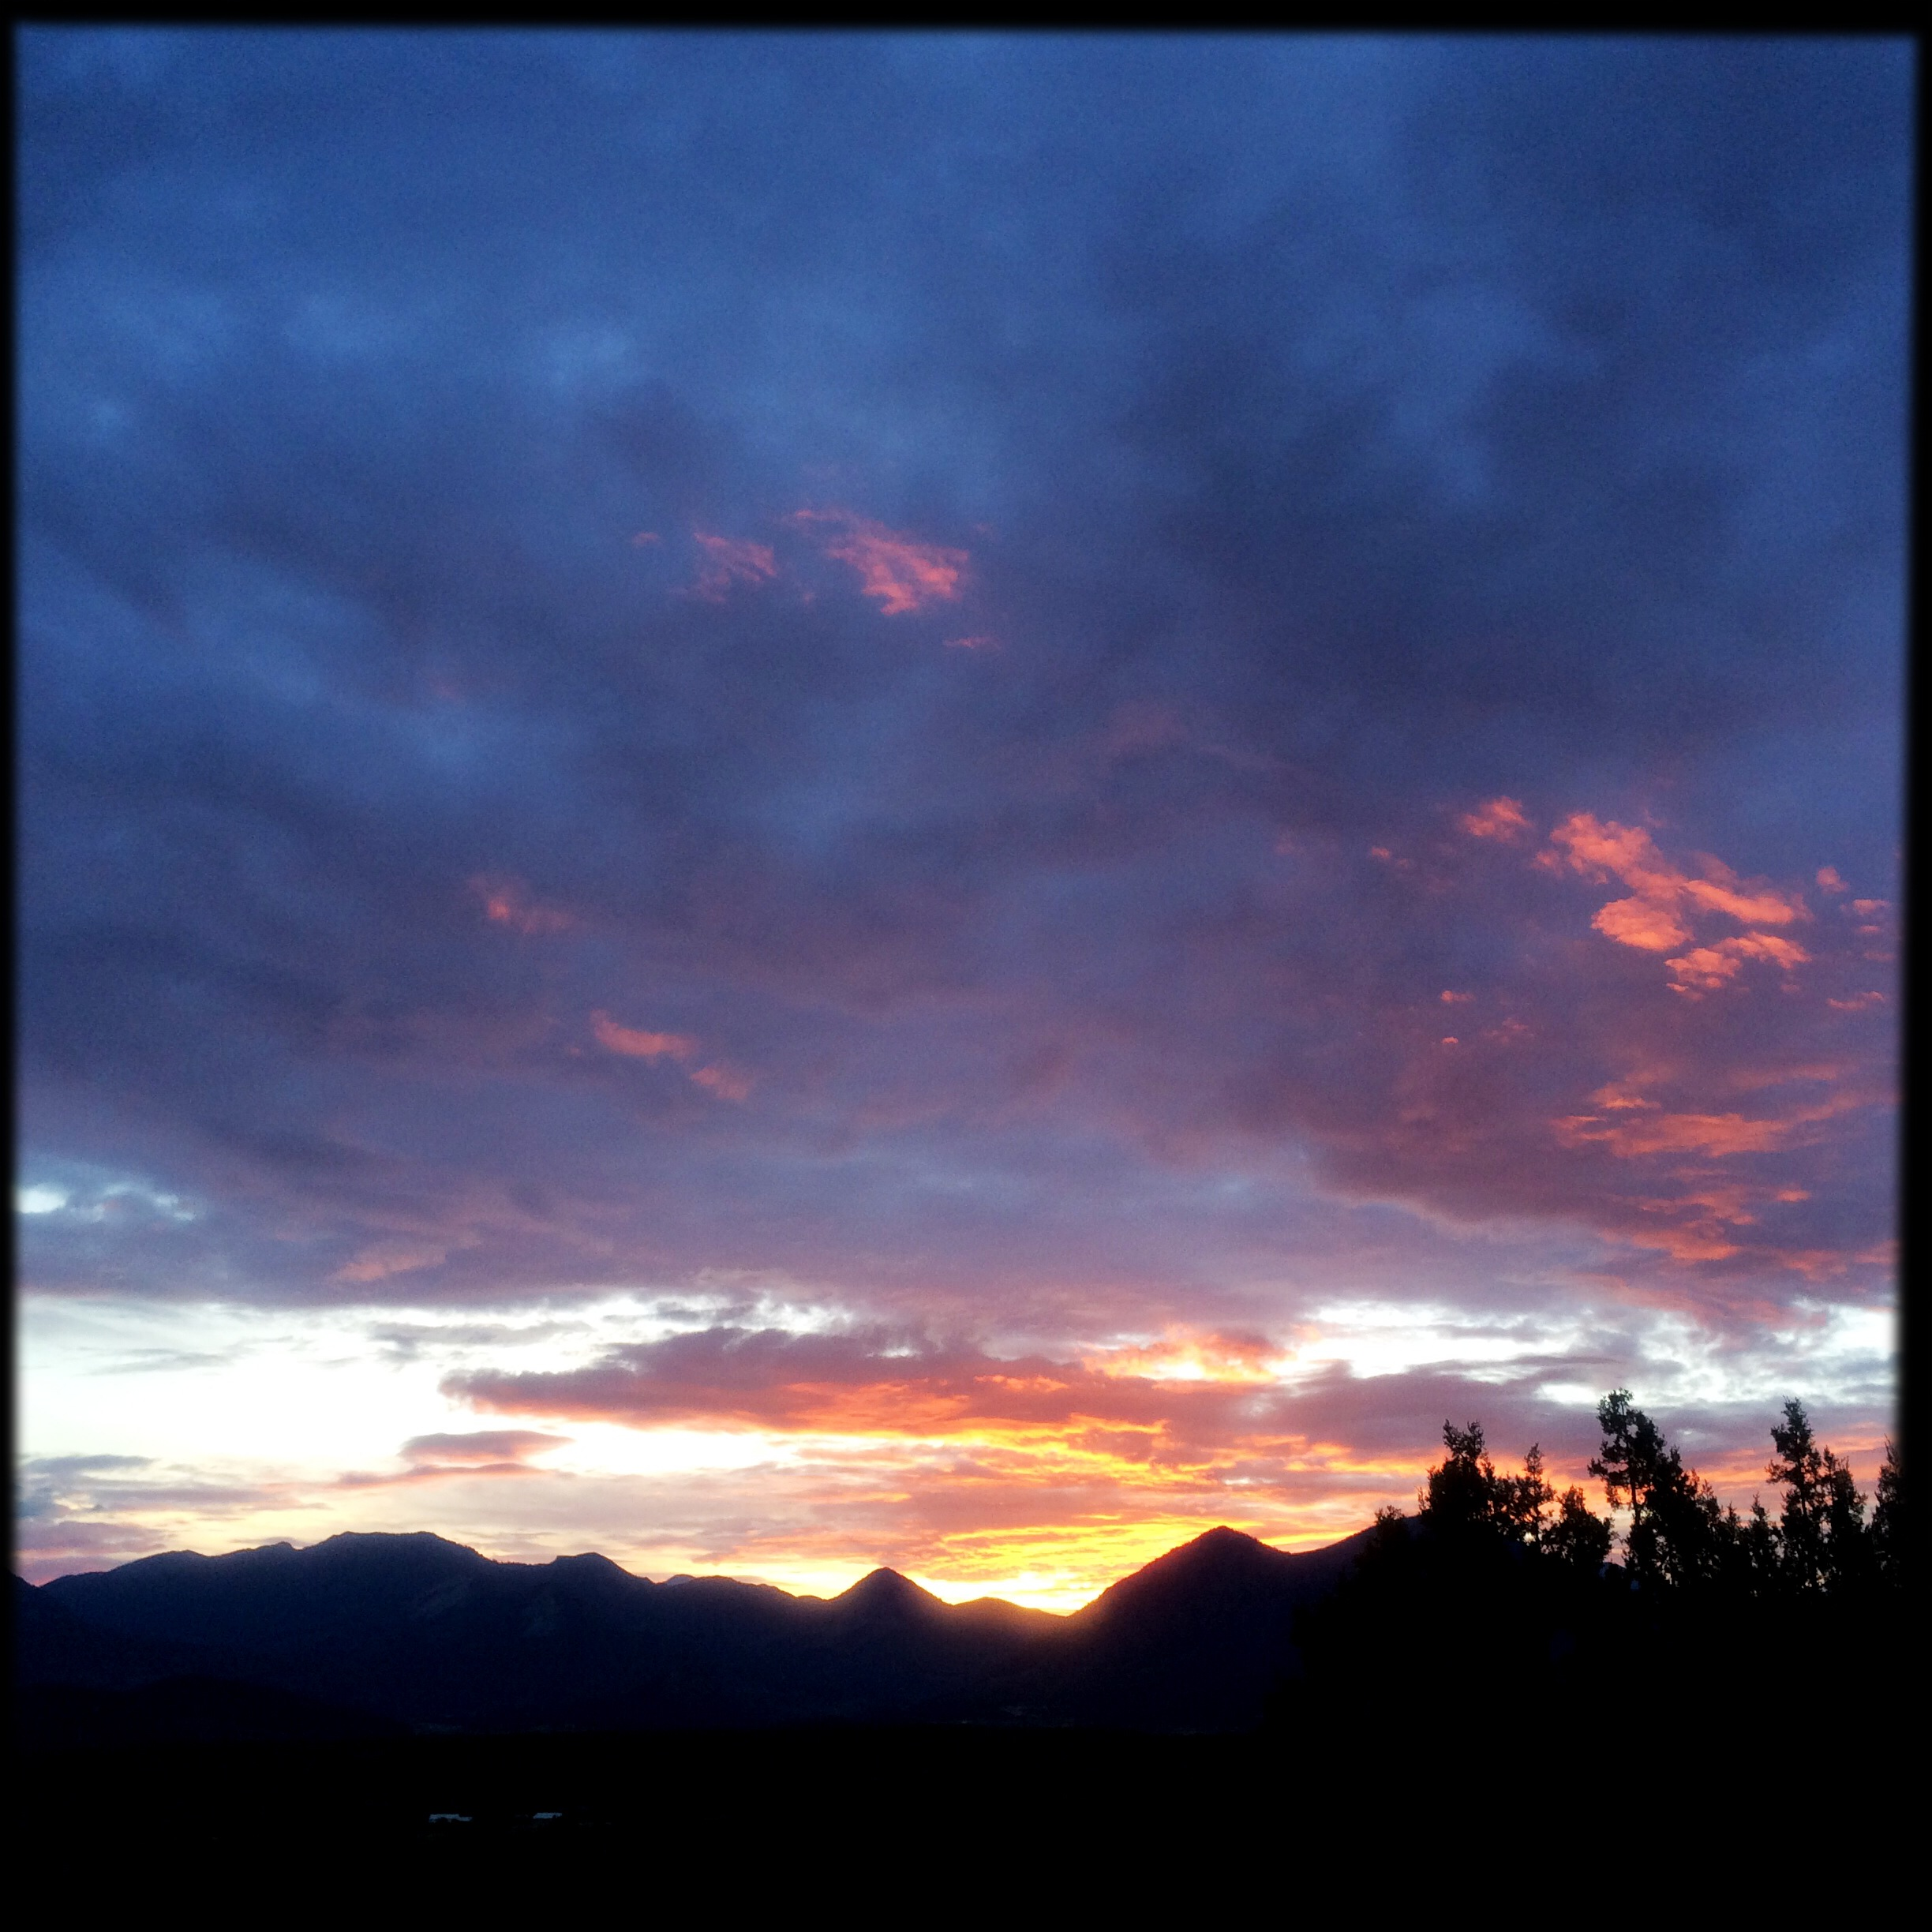 ... right about the time I crawled out of bed and shot this sunrise beyond her house.